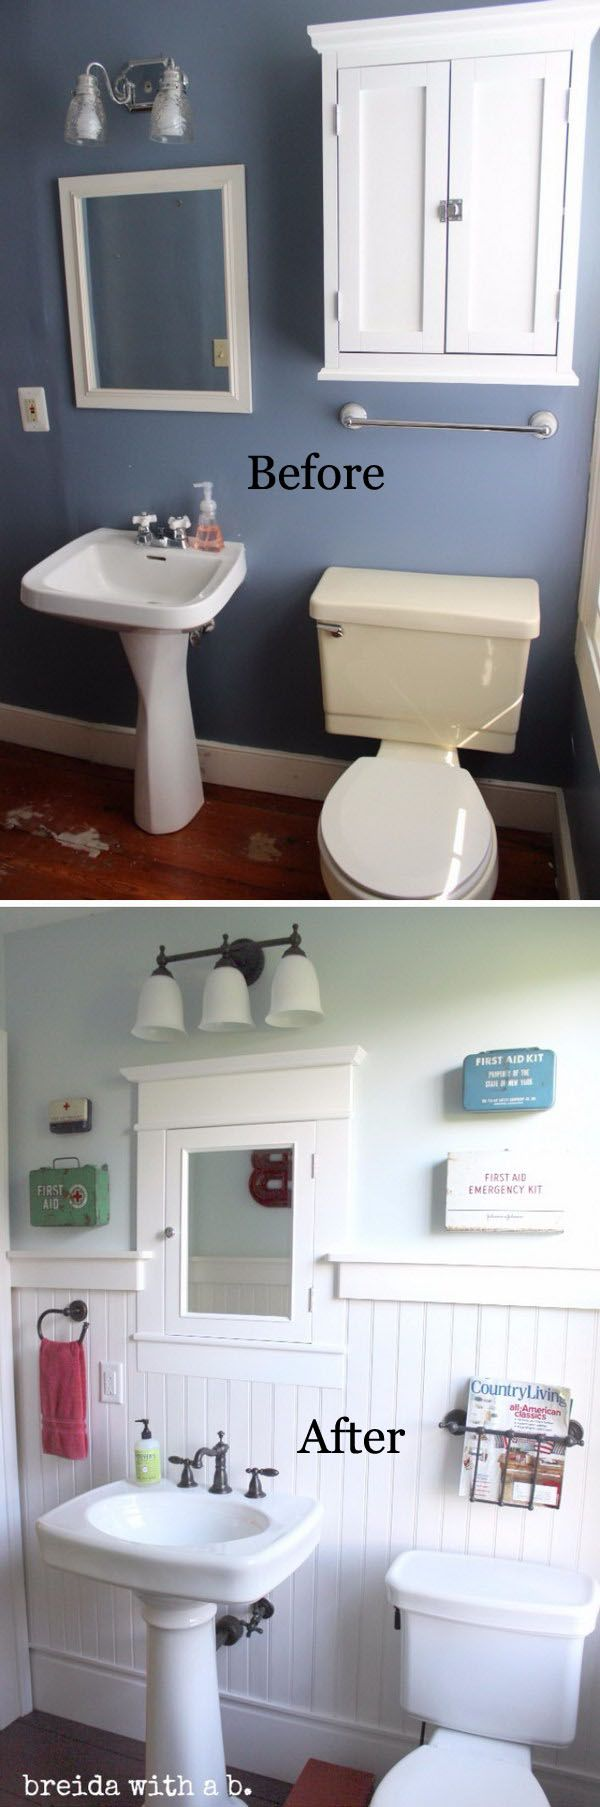 Bathroom Makeover Kit before and after: 20+ awesome bathroom makeovers | eyebrows, wall